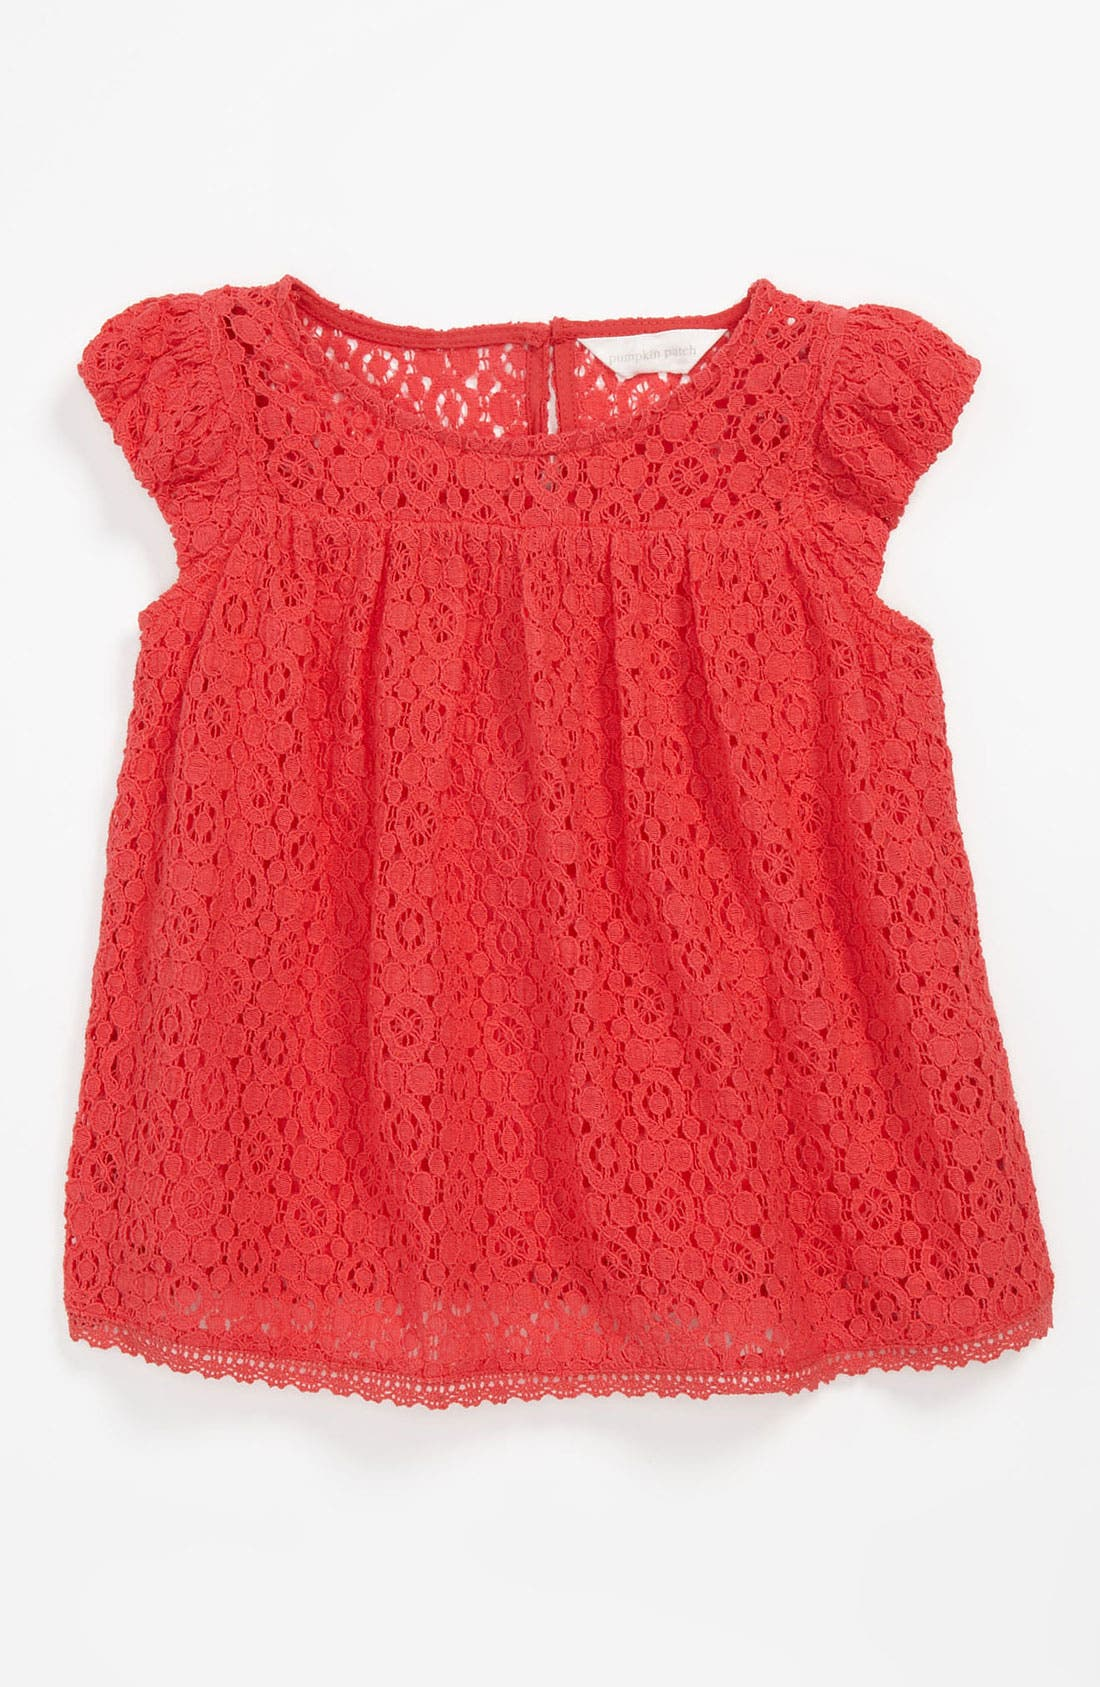 Alternate Image 1 Selected - Pumpkin Patch Lace Top (Toddler)